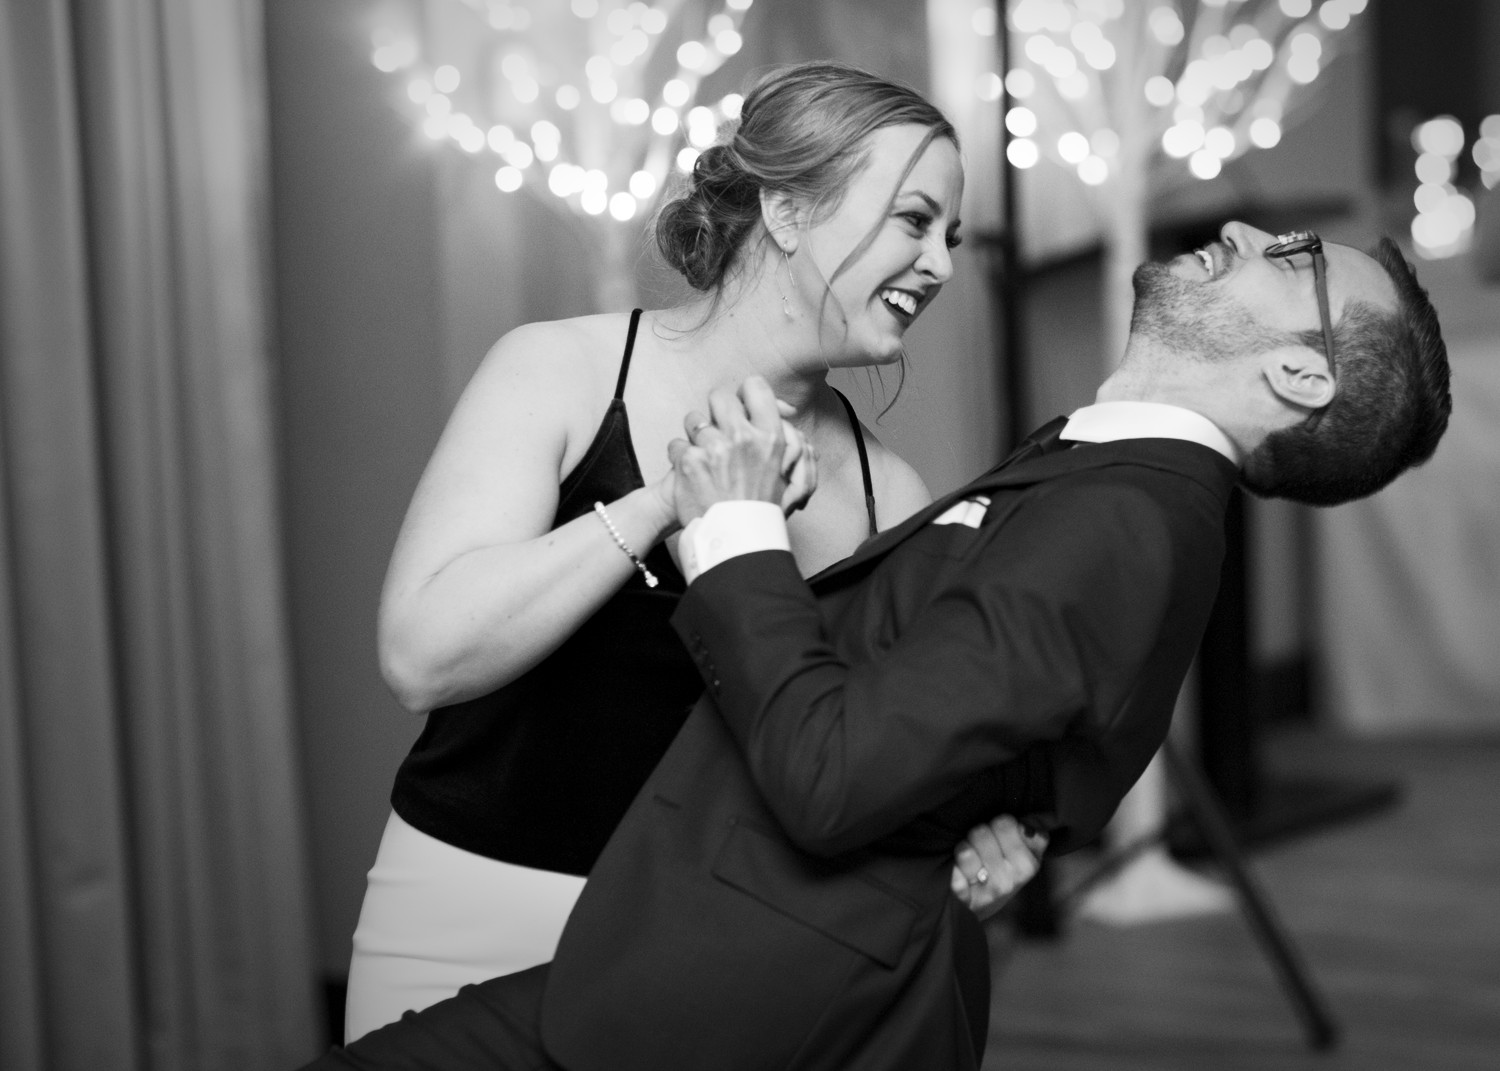 Wedding Dance - Make your first dance one to remember! From learning basic movements to a full choreographed dance, the lessons are designed around your specific needs.Prices vary based on location and number of lessons. Email Cathy to customize your package.